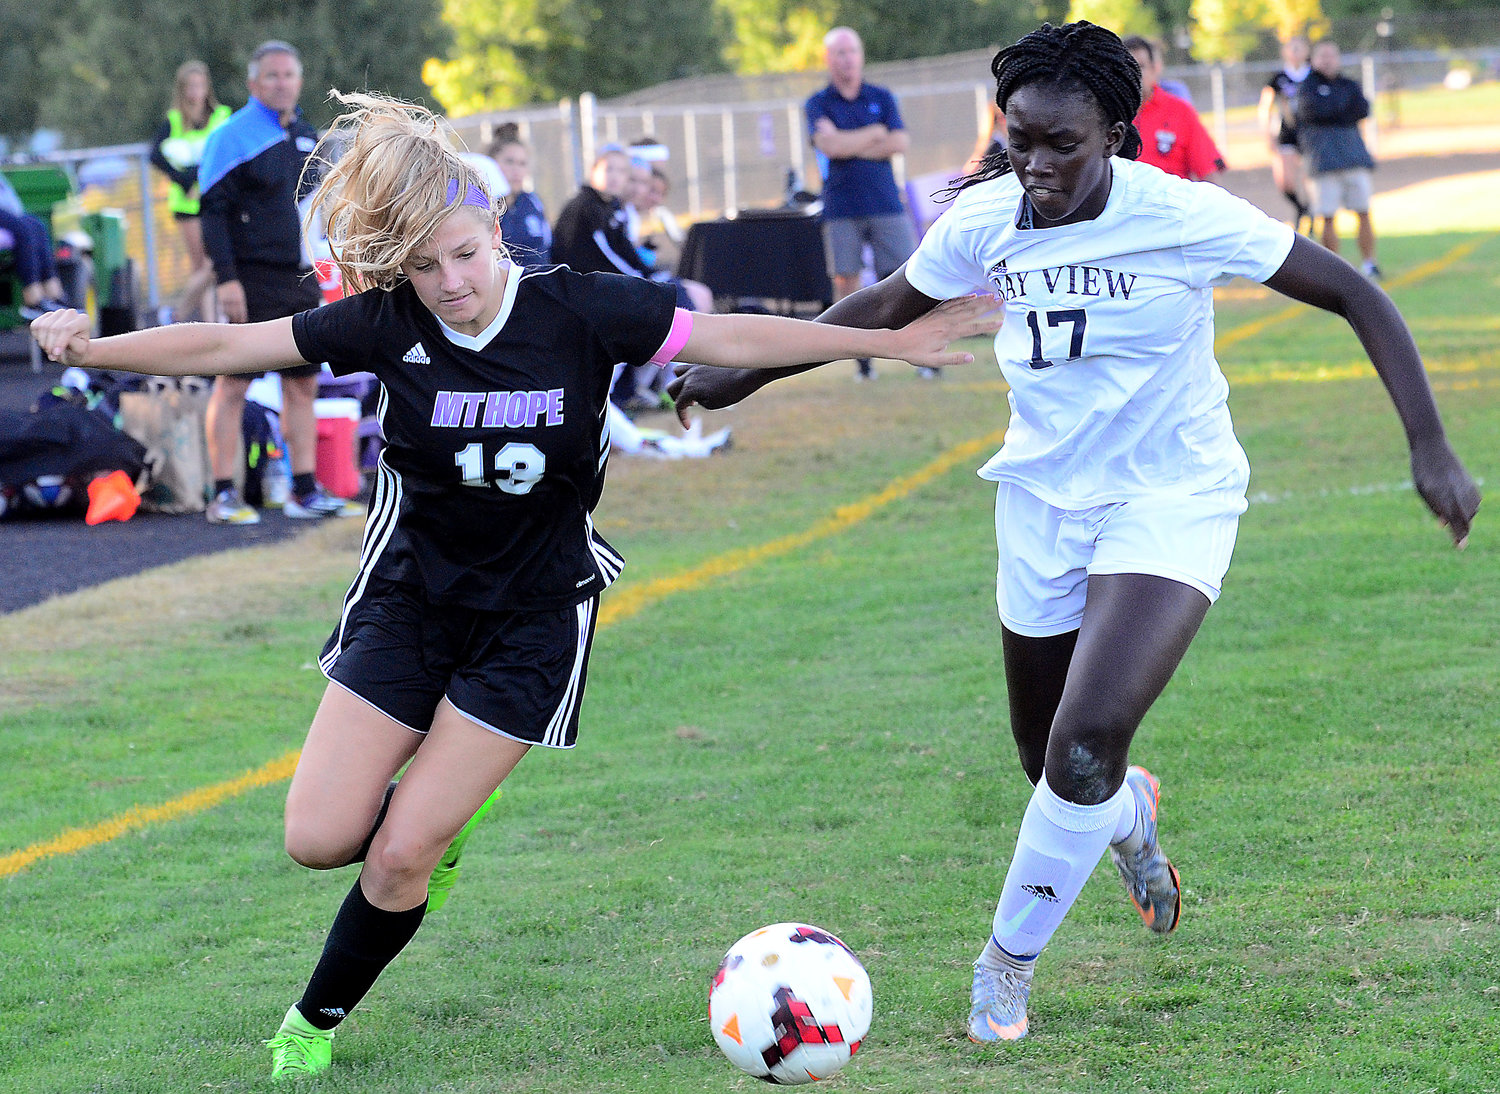 Senior forward Krista Squatrito races for the ball down the right sideline with Bay View defender Sokhna Guey in the second half.